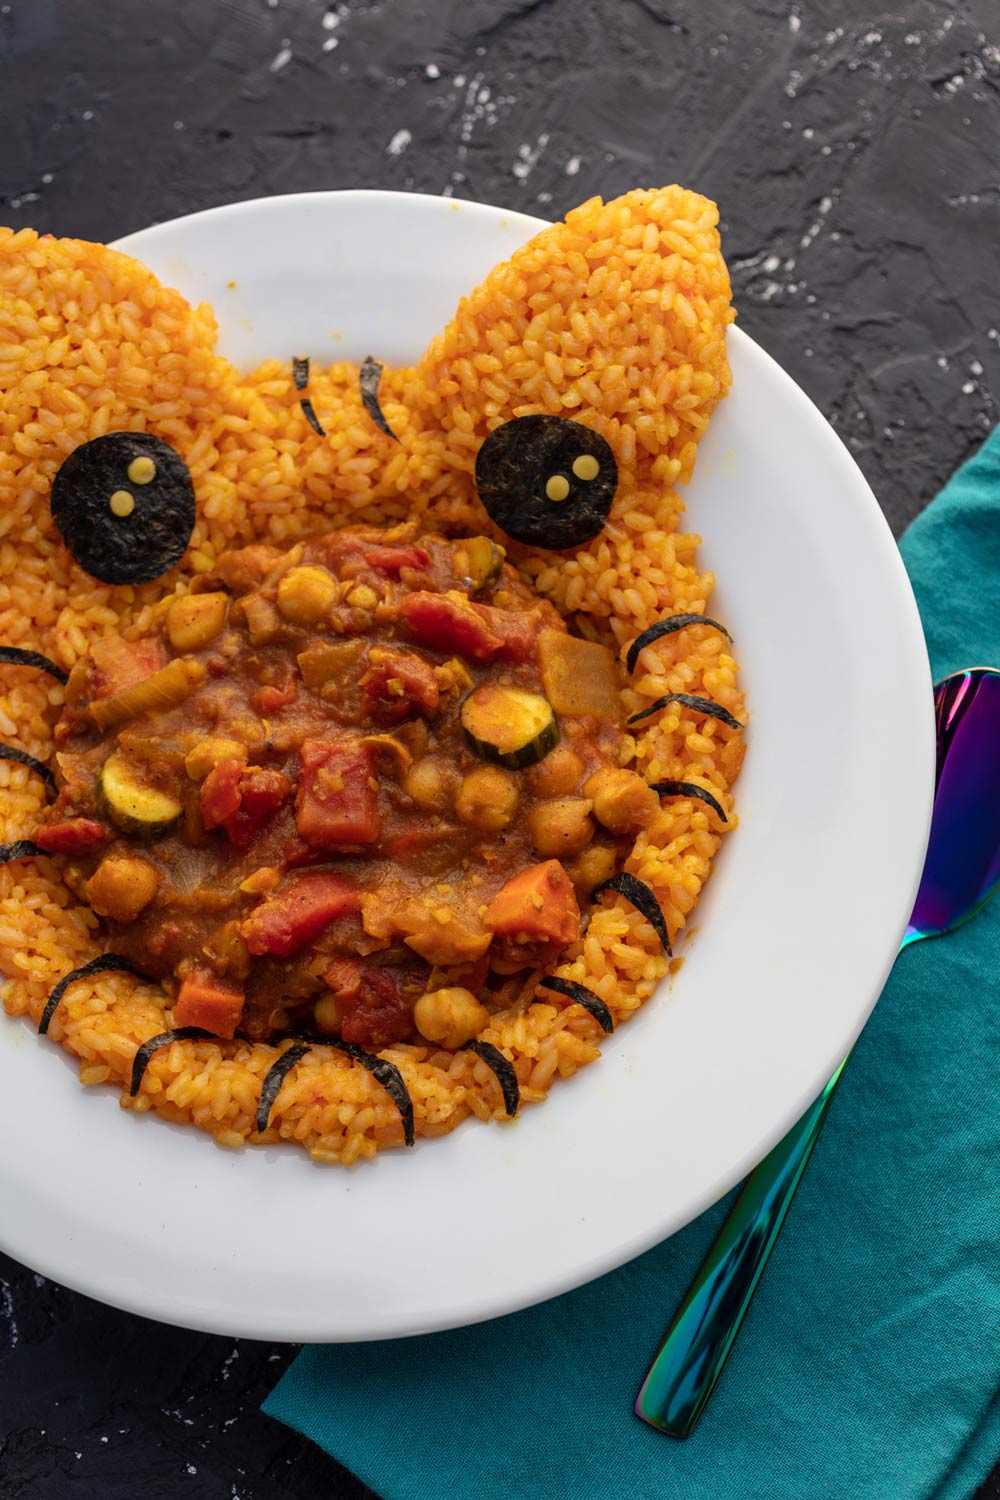 Vegan Chana Masala that looks like a tiger